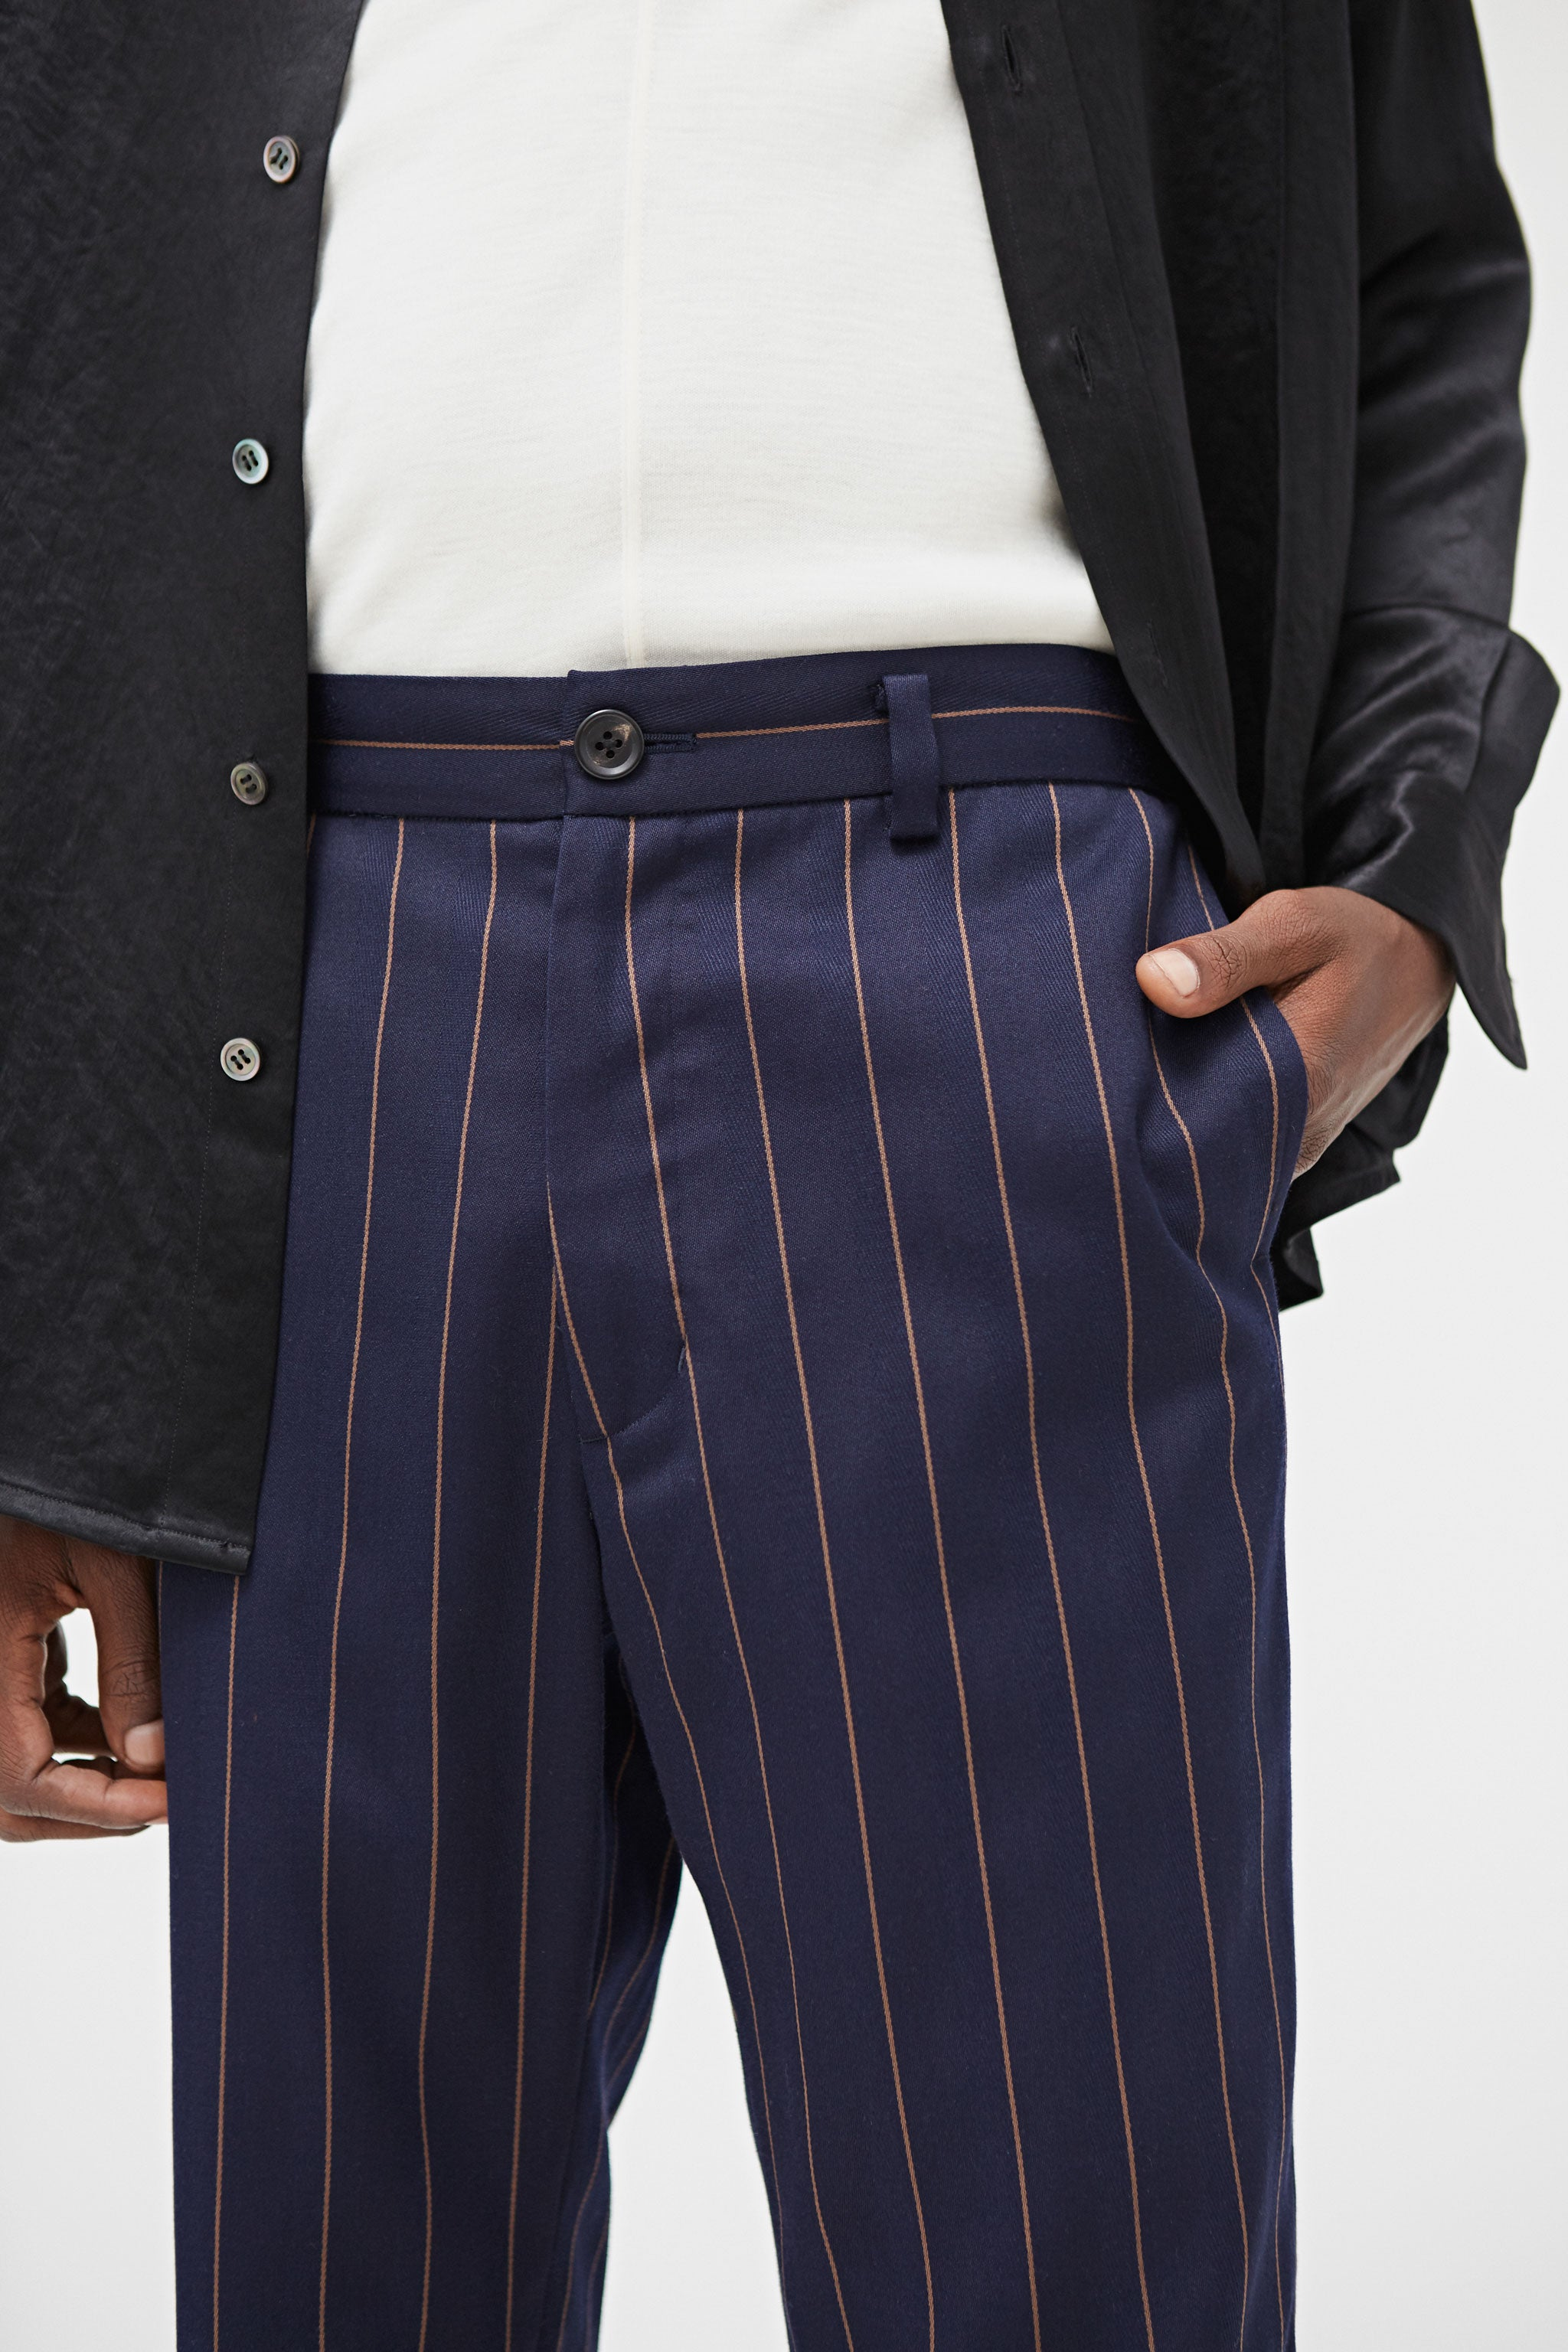 Goodfight FW18 Sunday's Best Trouser Navy Pinstripe